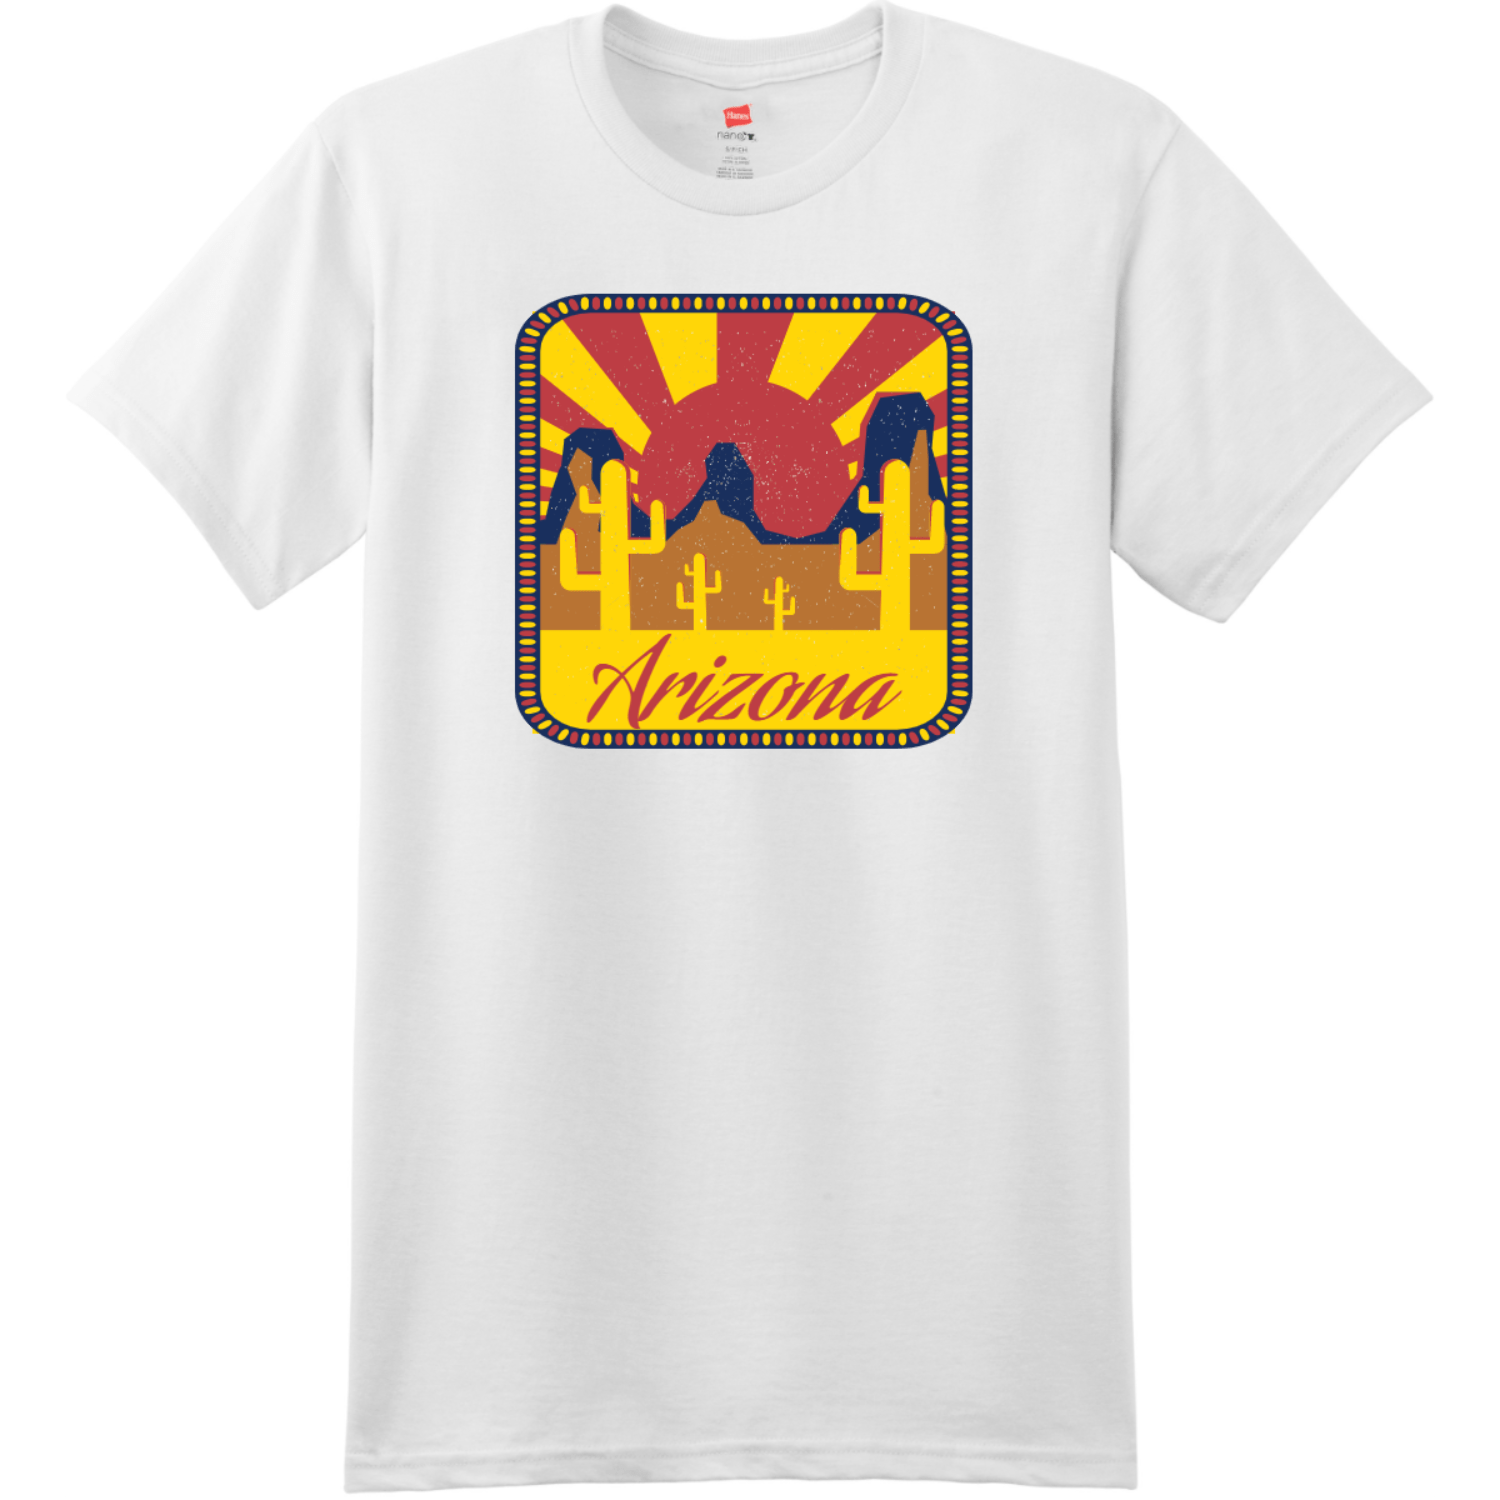 Arizona Desert Sun T-Shirt White Hanes Nano 4980 Ringspun Cotton T Shirt